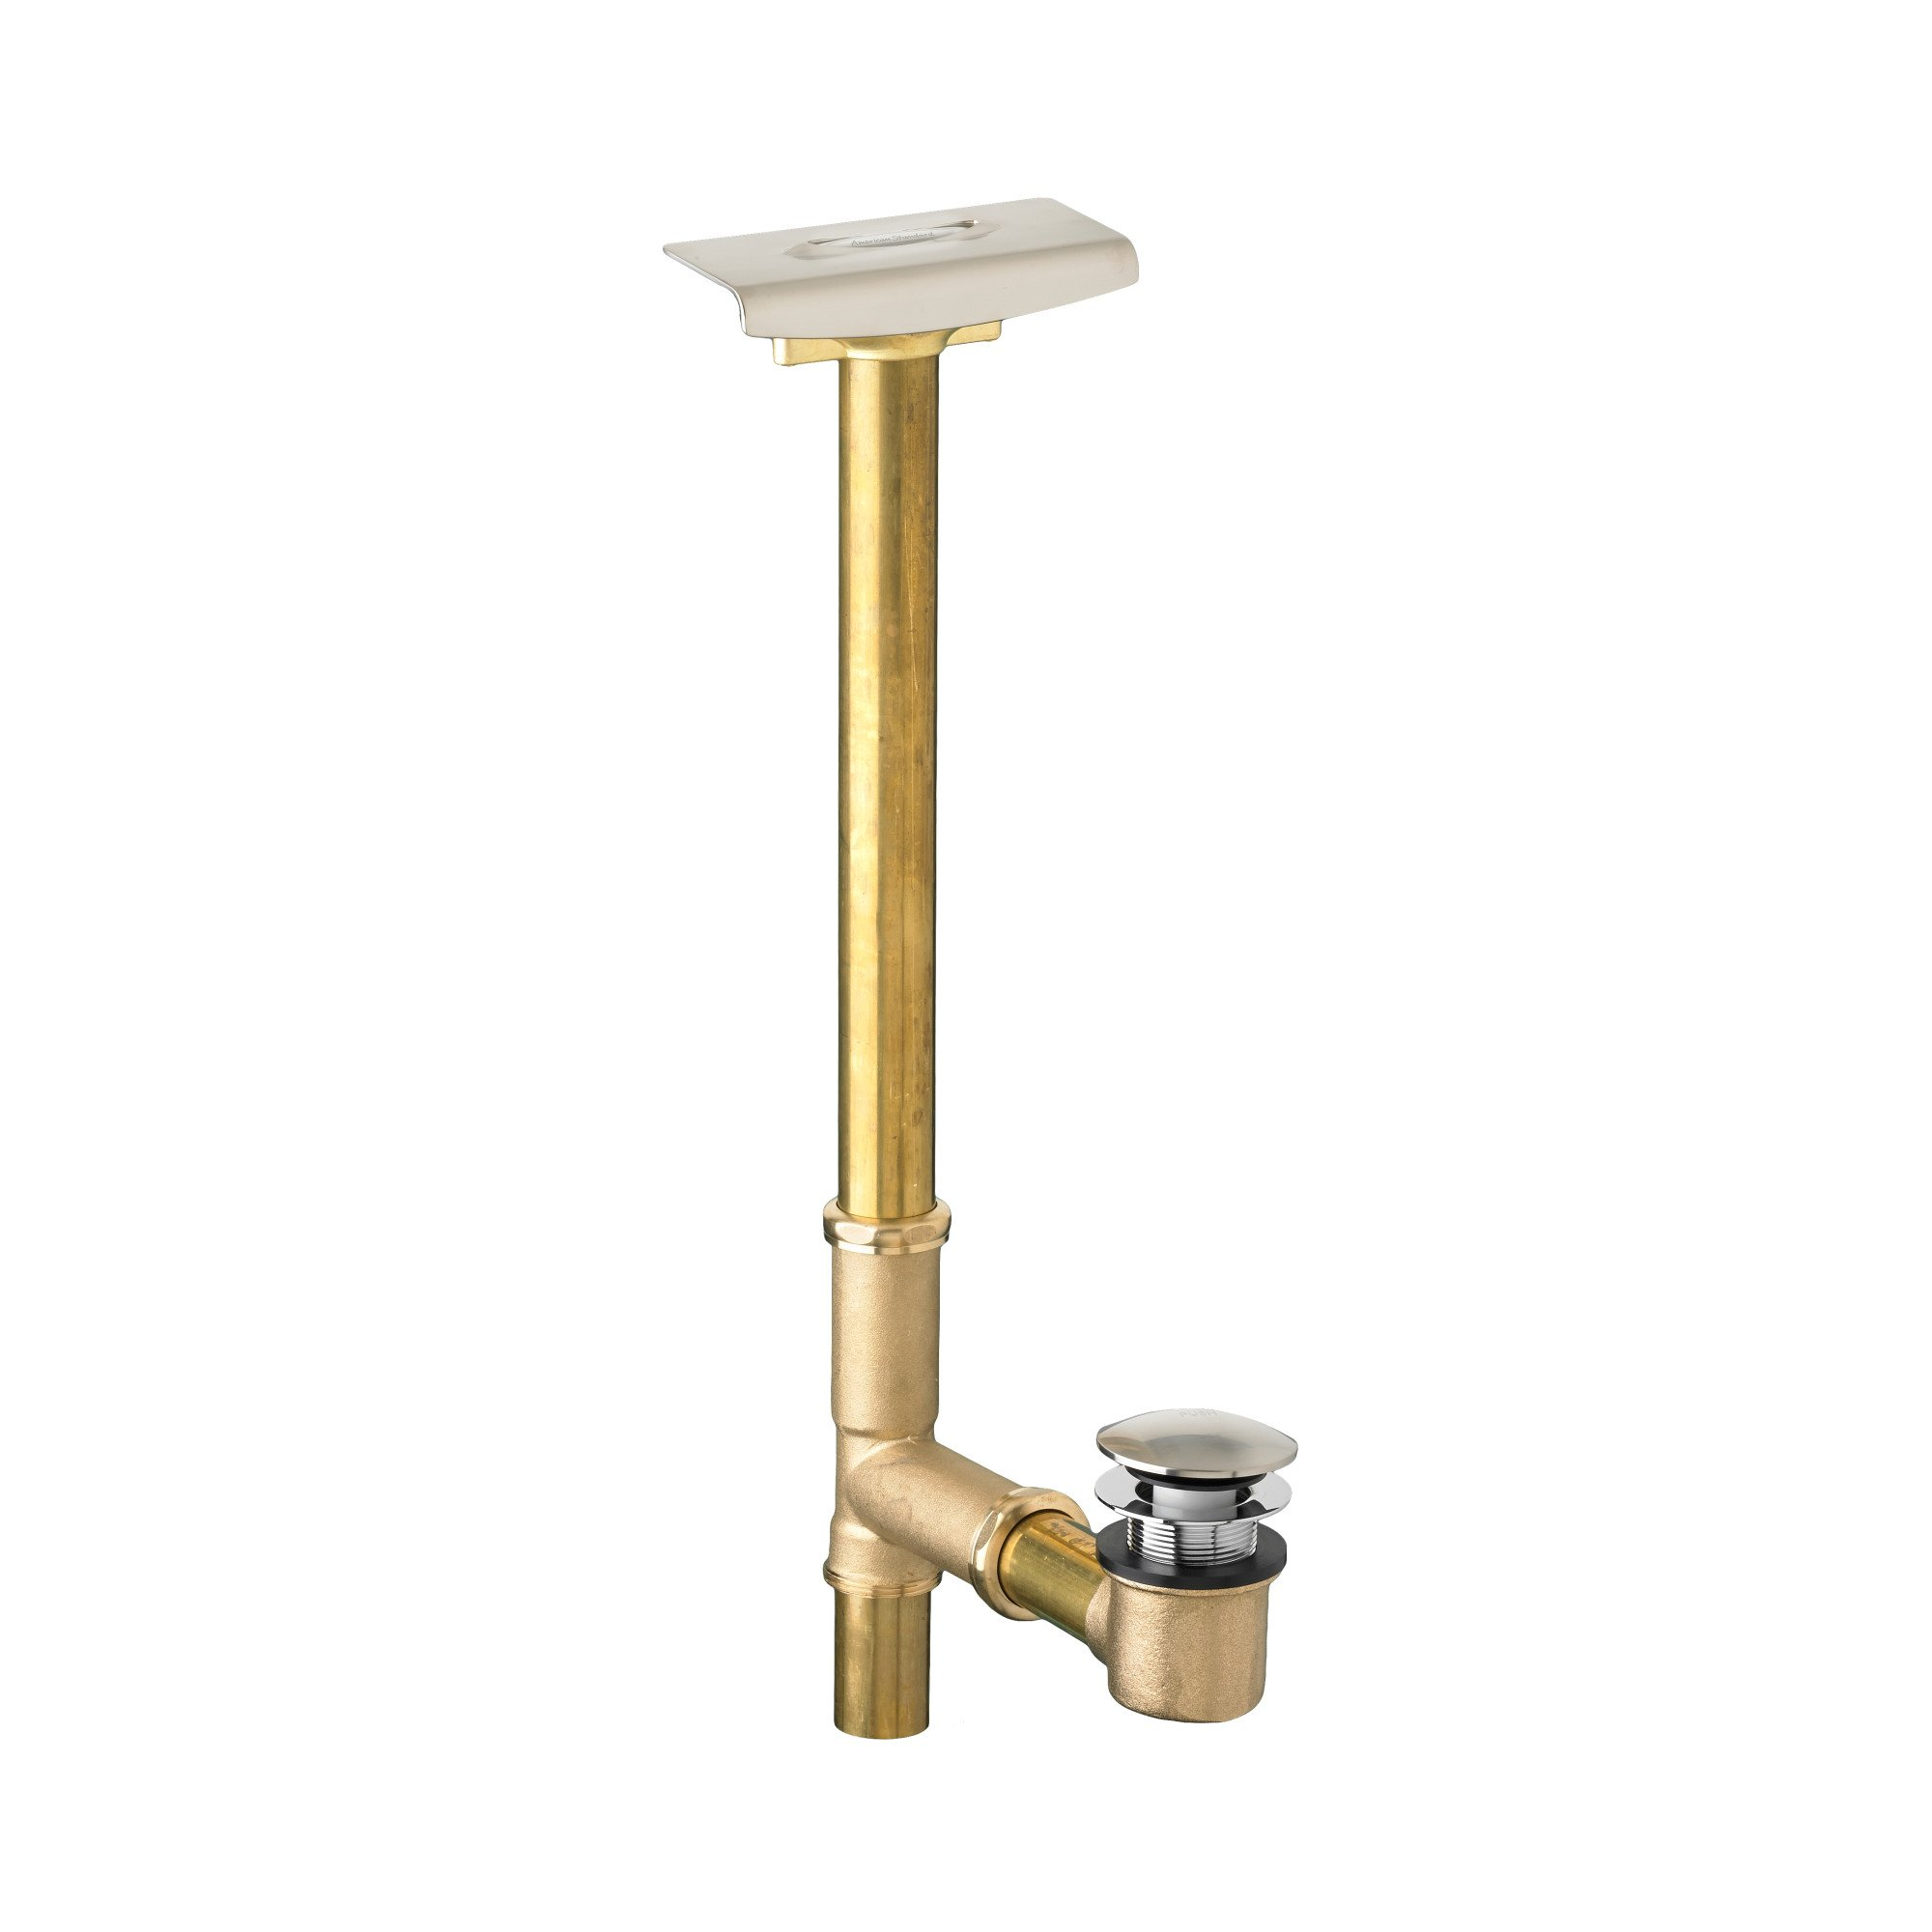 American Standard 1599.205.295 Deep Soak Max Drain with Unique Top-Mount Overflow, Allows 3-Inch Deeper Water Level, Satin Nickel